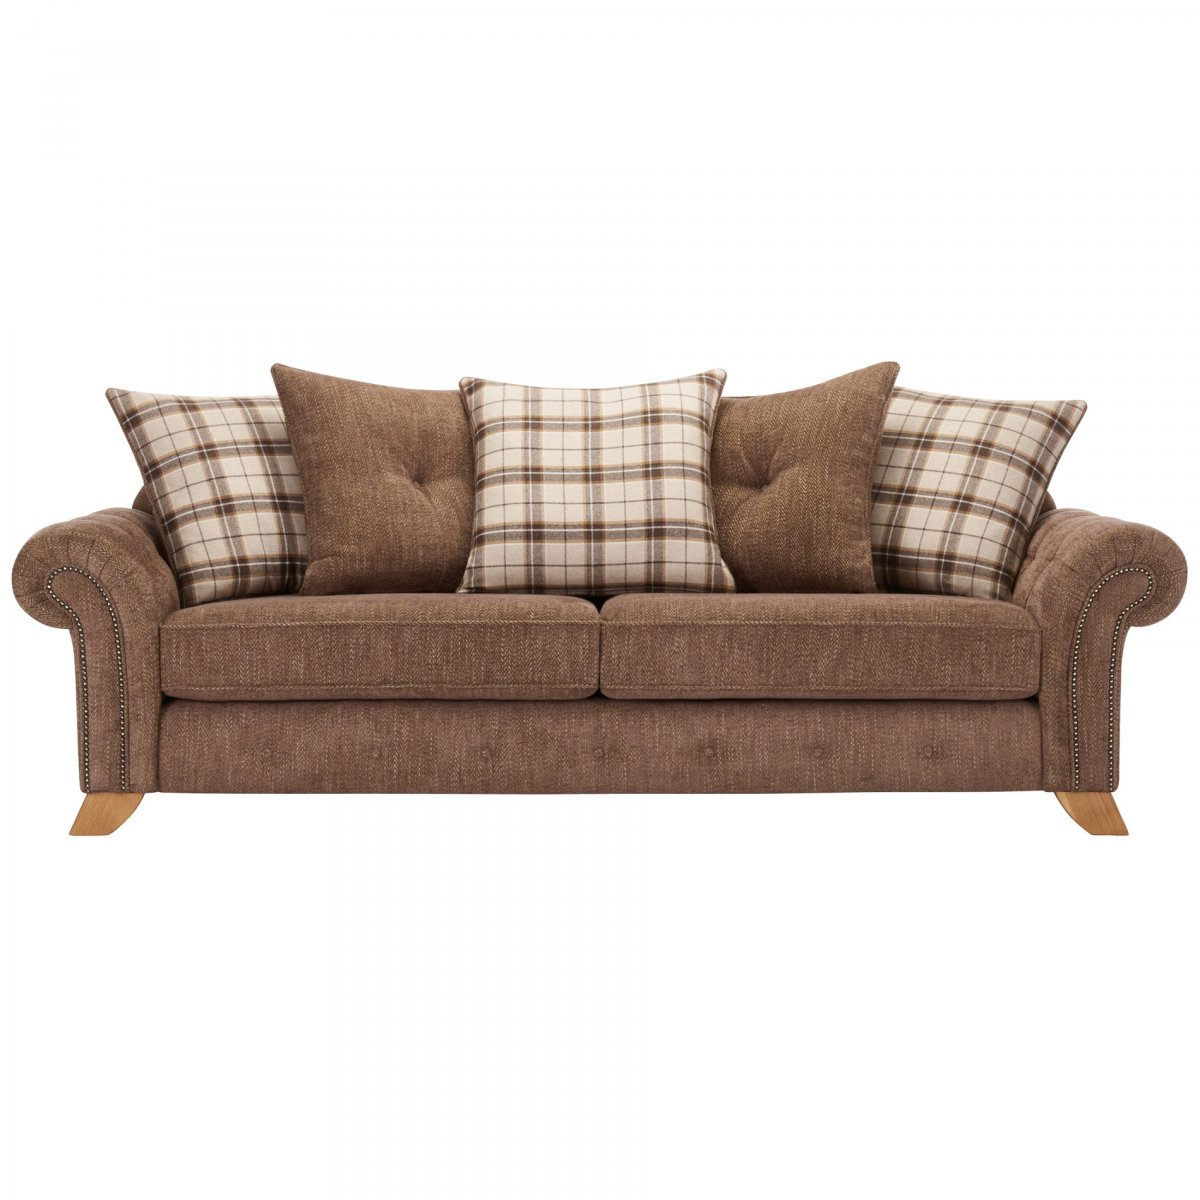 Montana 4 Seater Sofa With Pillow Back In Brown Fabric With Montana Sofas (View 9 of 15)